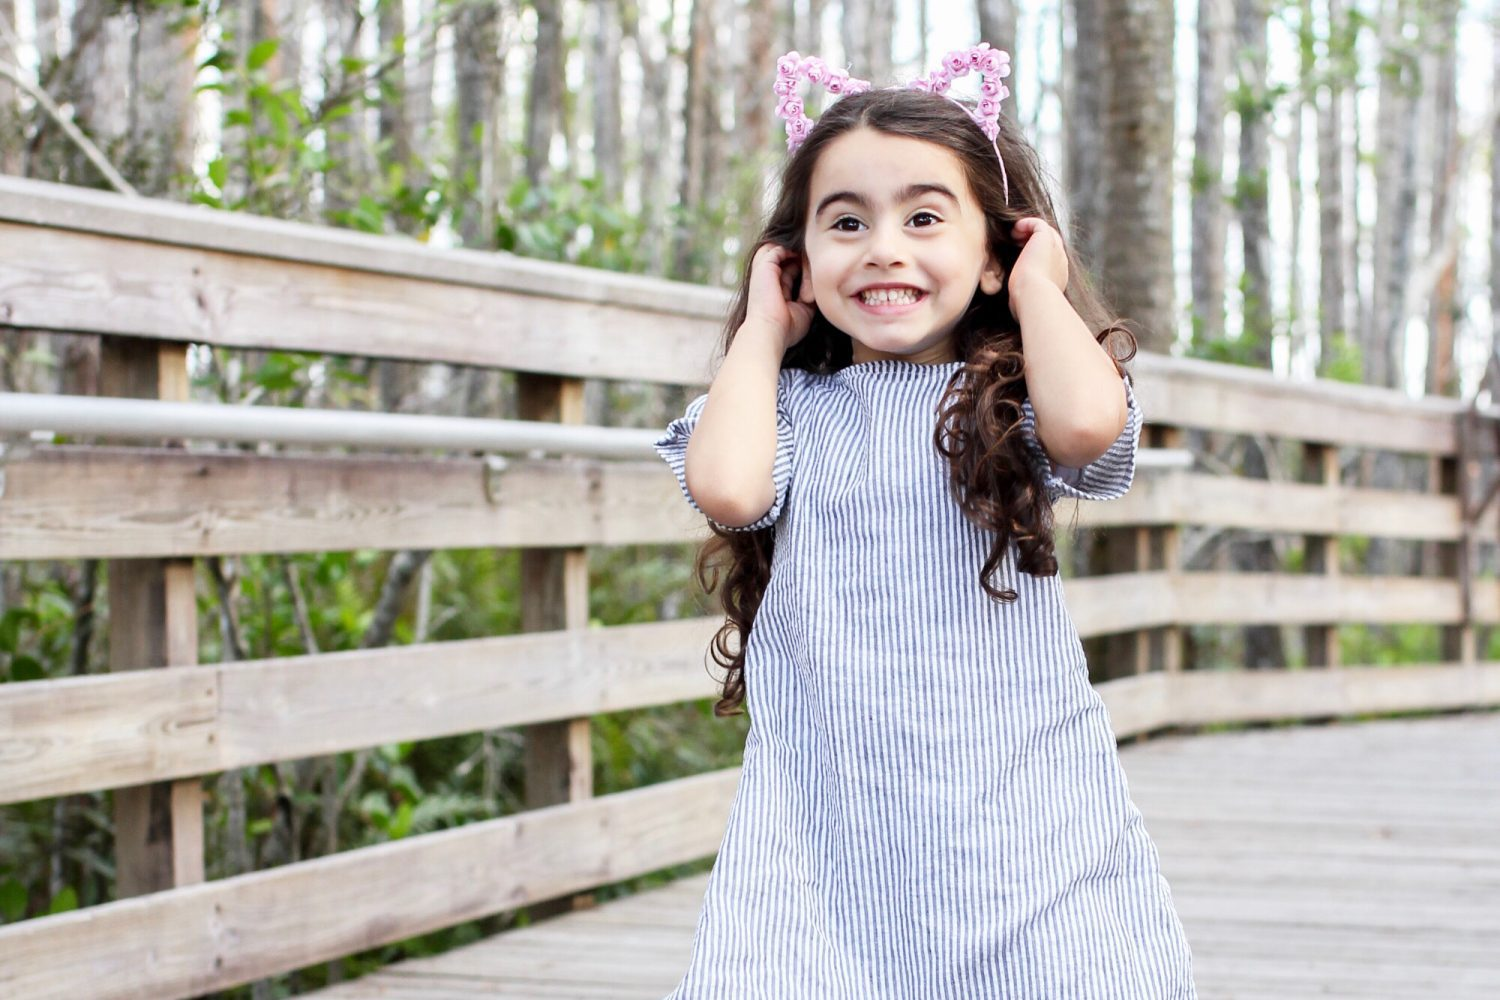 ava's flower crowns, charliejoe, children's clothes, children's clothing, classic kids clothing, dresses, handmade, kids clothes, kids clothing, kids dresses, small shop, support handmade, support small shops, the small fashionista, thesmallfashionista, weesqueak, brand repping, adventure, adventures